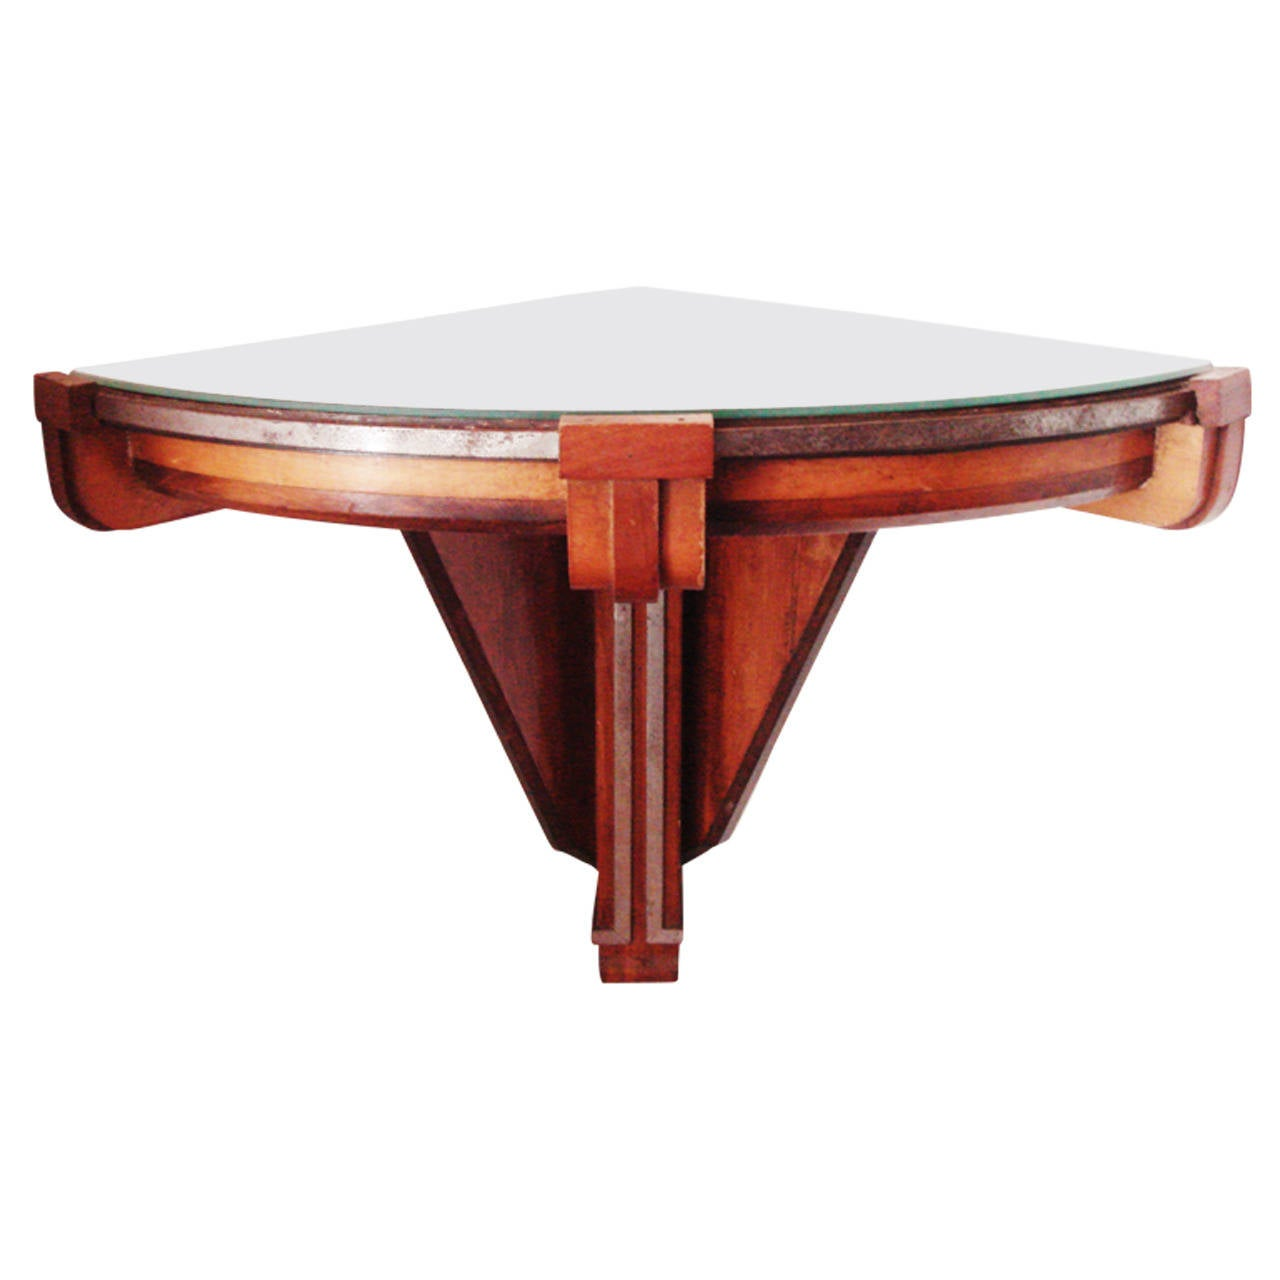 American Art Deco Polychrome Wood And Chrome Banded Wall Mounted Corner  Table For Sale